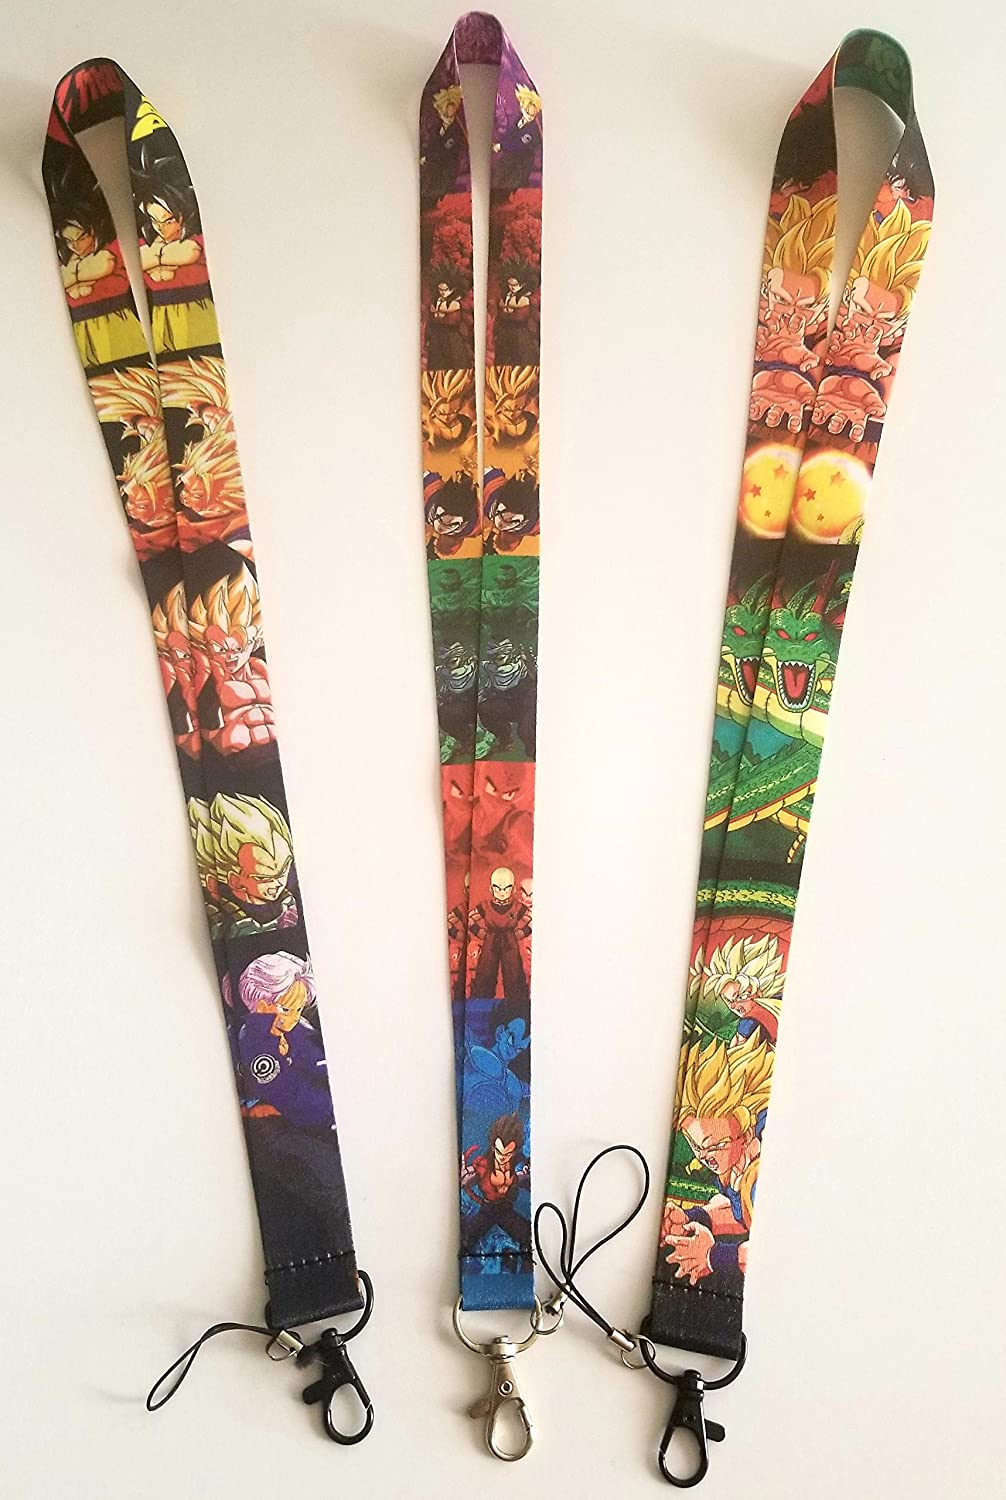 # 3 Pcs New Dragon Ball Z Lanyards Super Saiyan Son Goku Mobile Phone ID Holder Neck straps Lanyard keychain J & A Best Deals